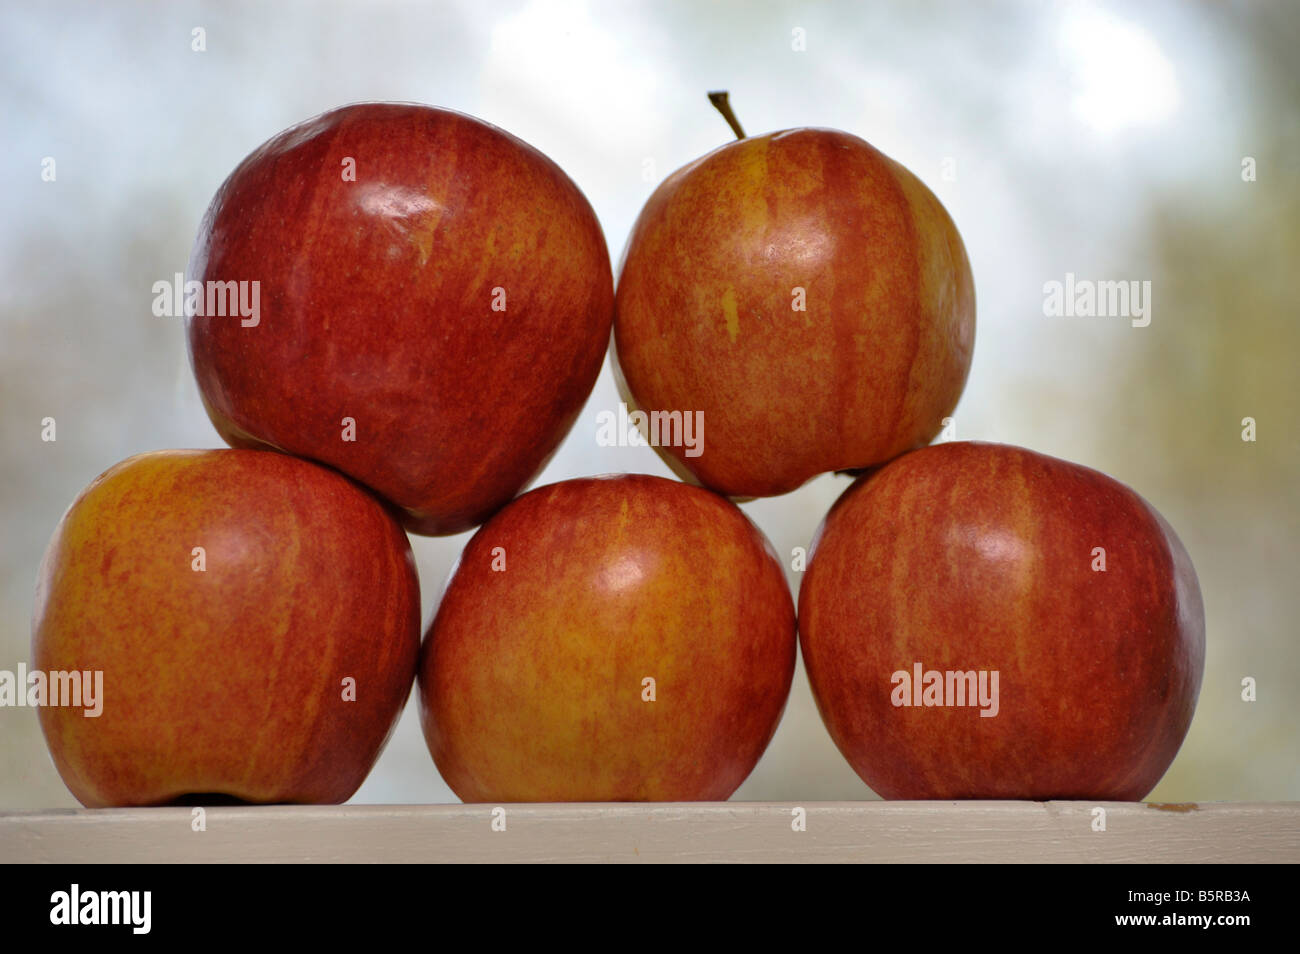 Apples stacked on a window sill Stock Photo